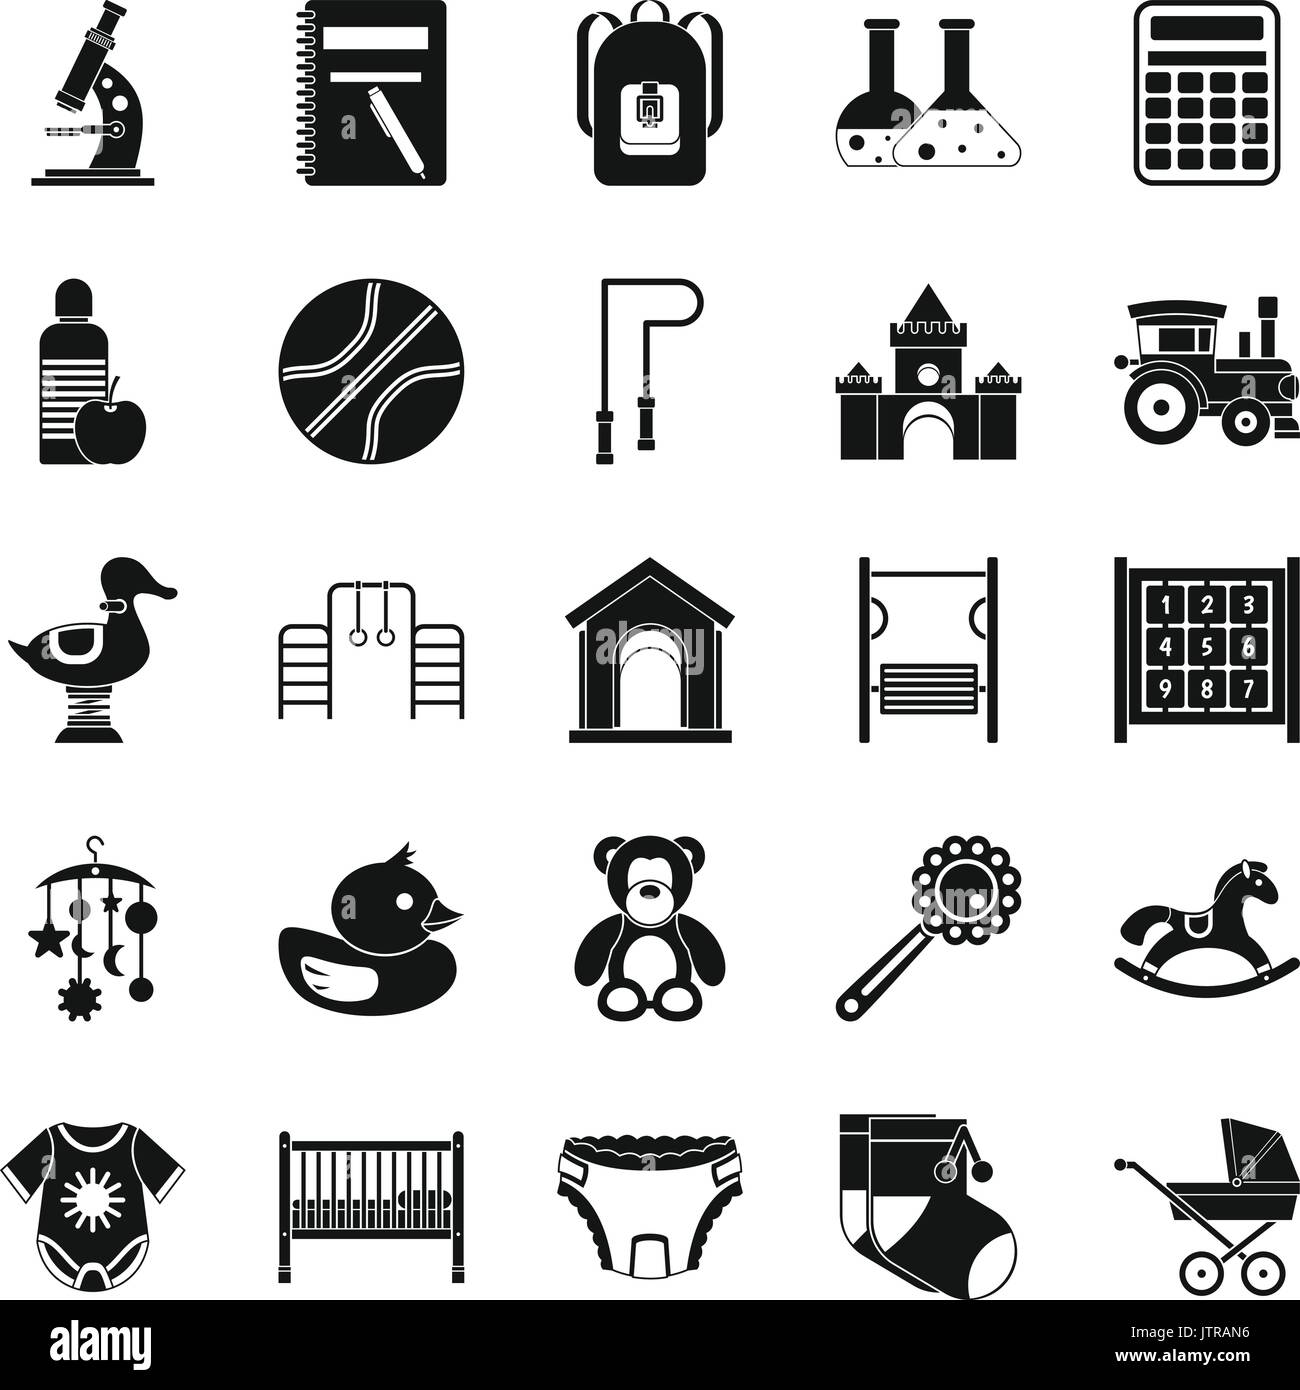 Scholar icons set, simple style - Stock Vector